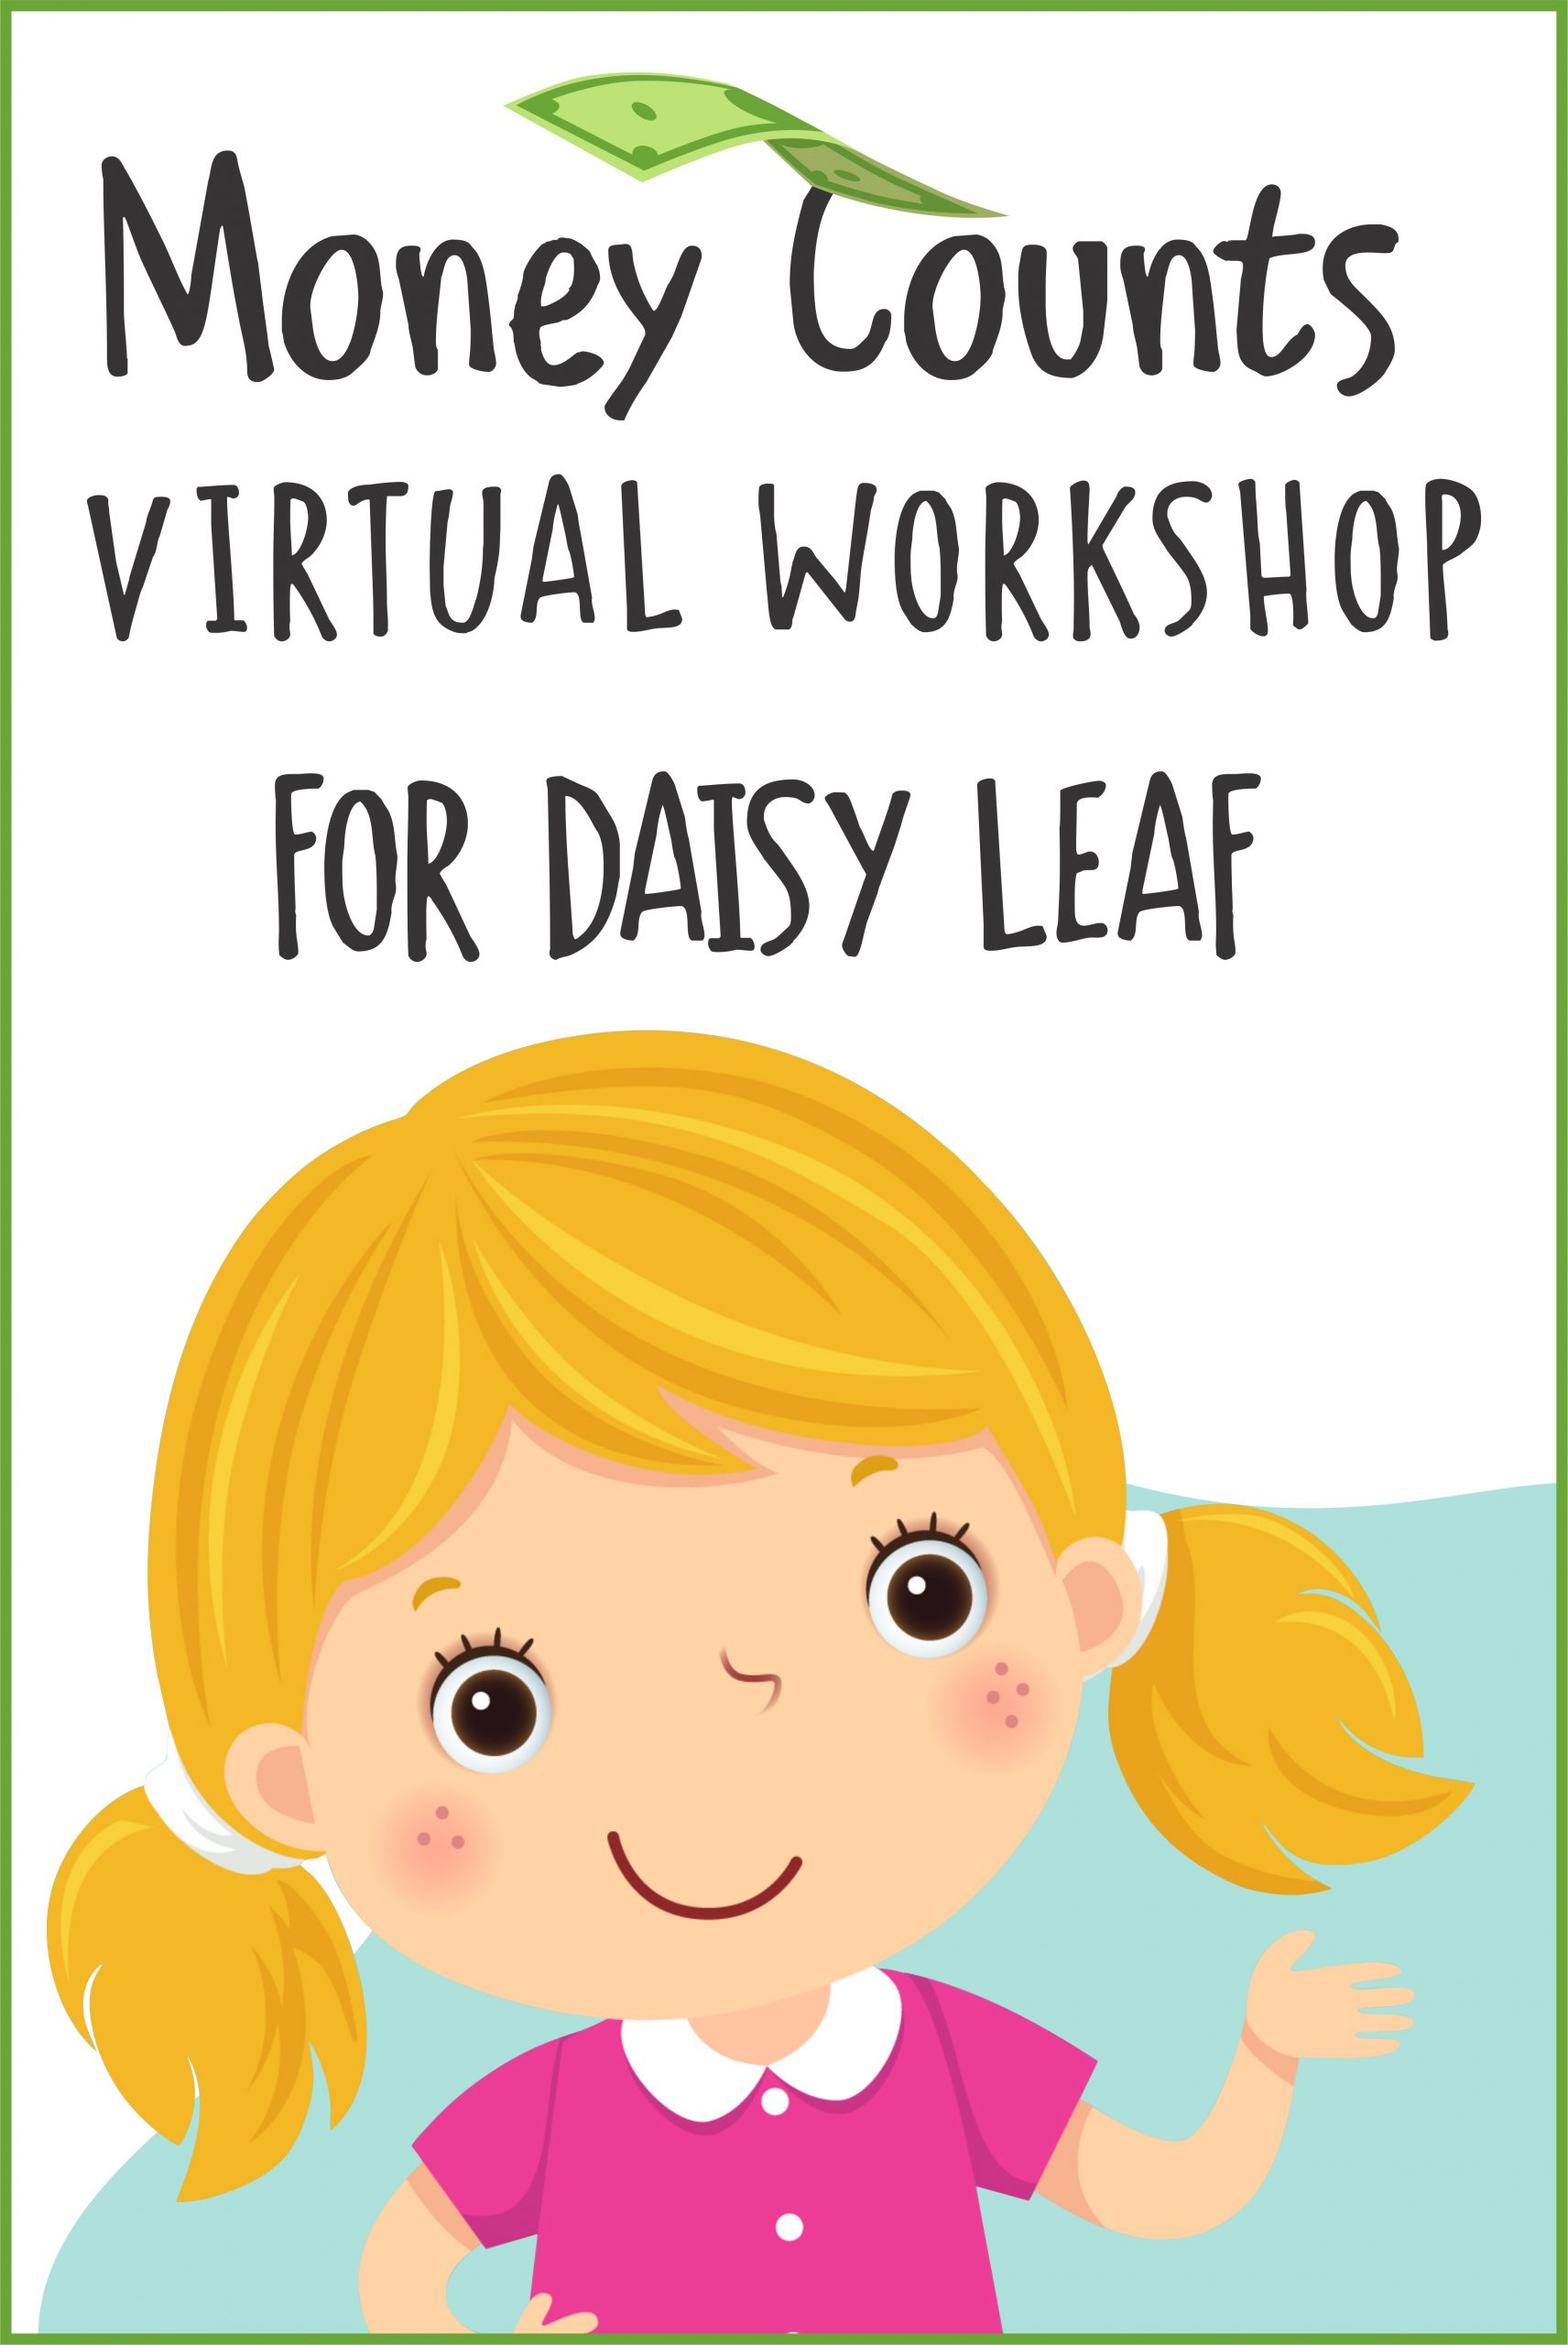 Girls will learn about coins and bills and what they can buy on a budget. Daisies earn Daisy Leaf #makingfriends #daisies #leafpatch #moneycounts #virtualworkshop #budget #girlscoutpatch #funpatch #onlineclass via @gsleader411